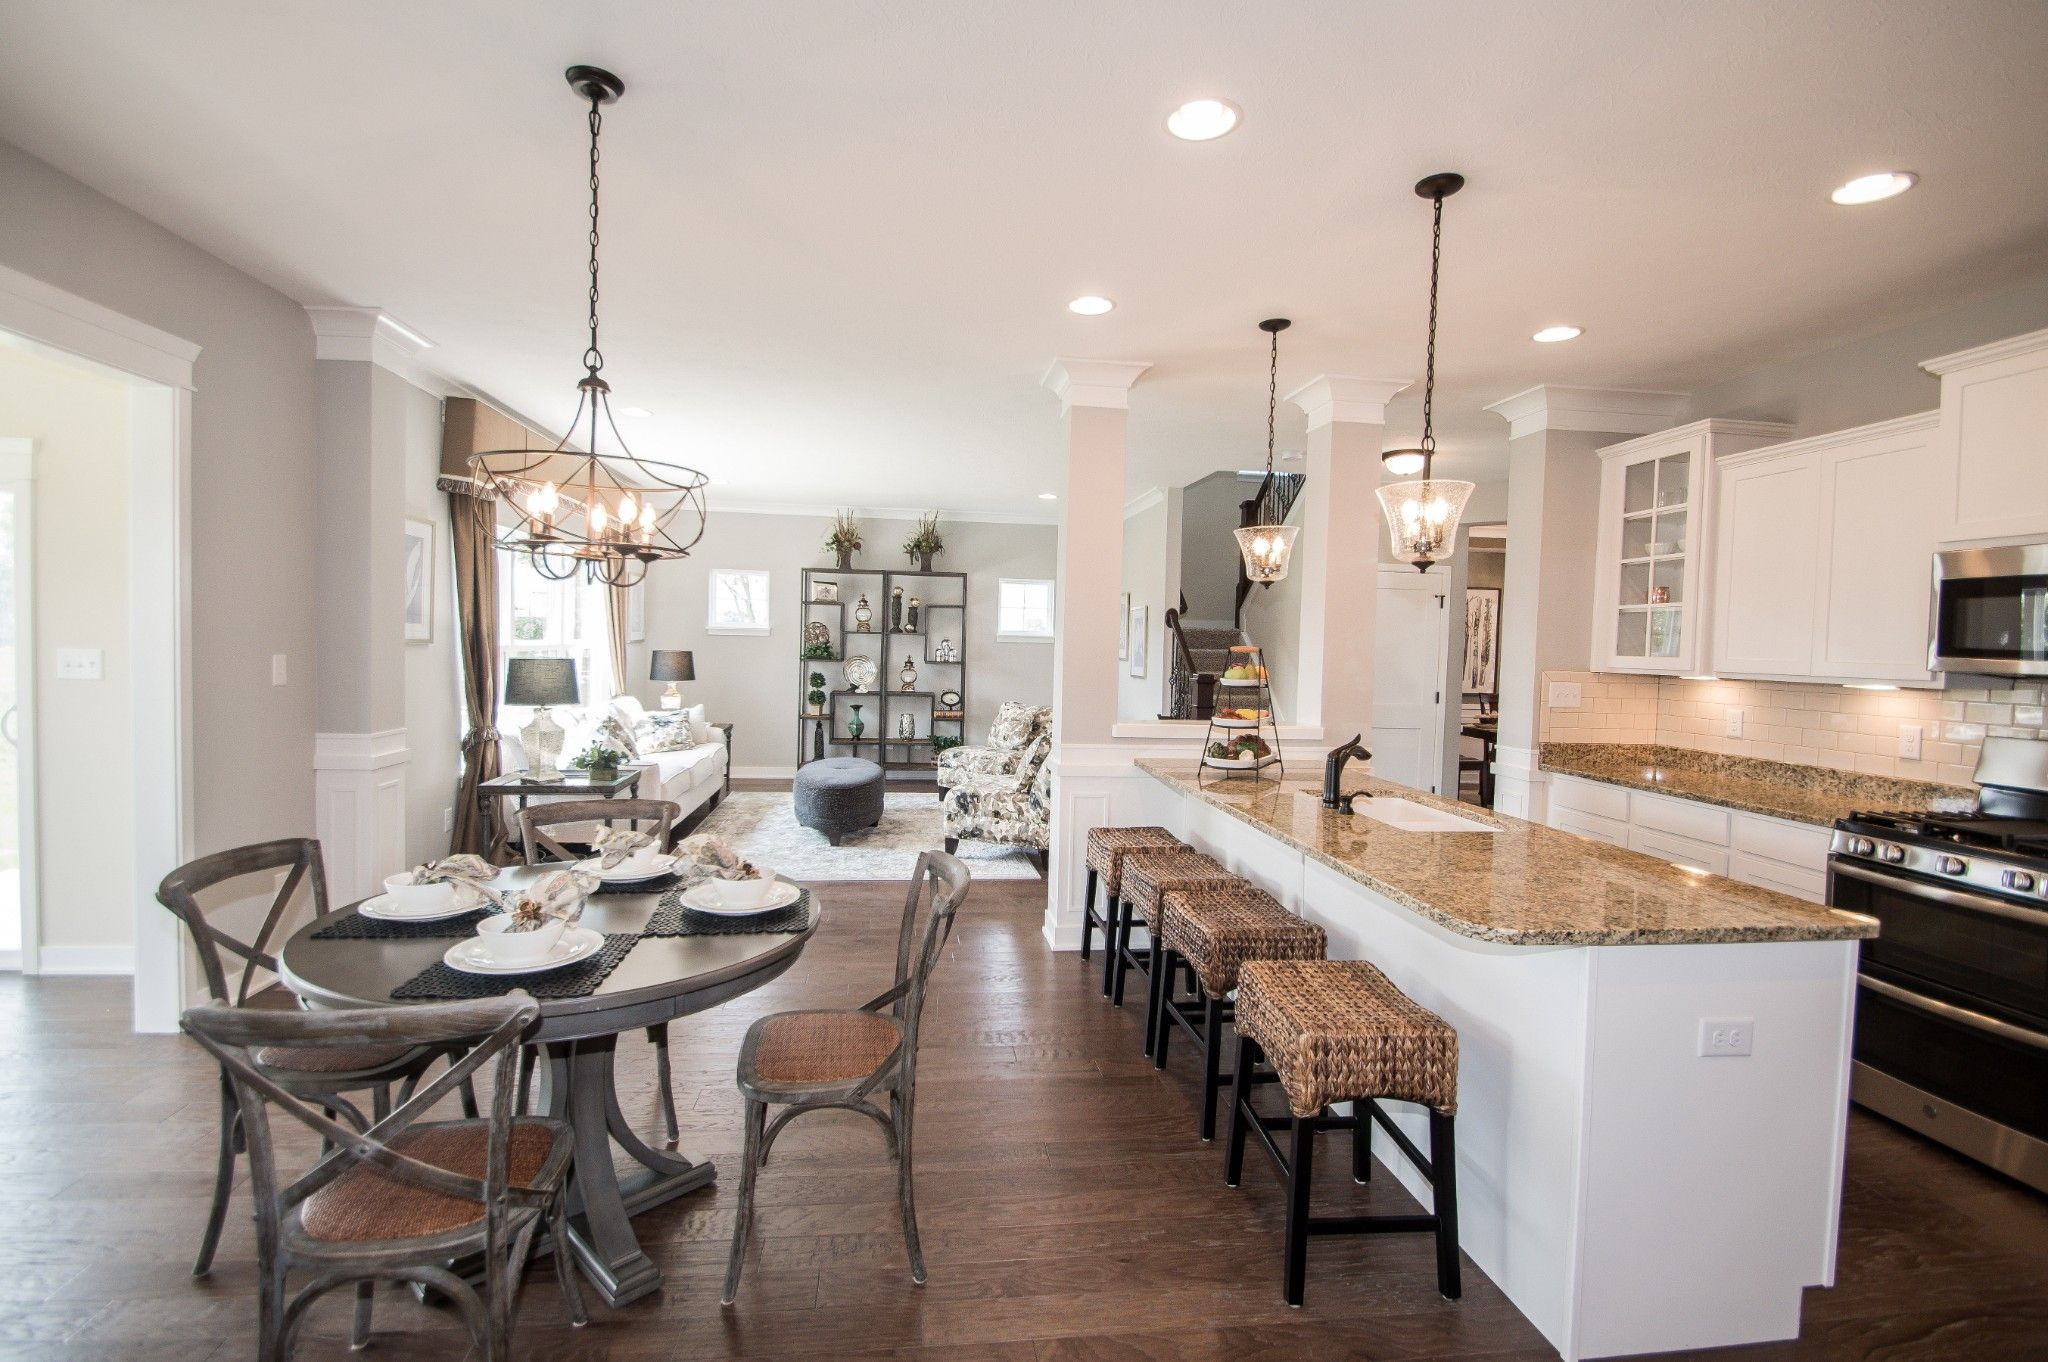 Kitchen featured in the Preston By Olthof Homes in Fort Wayne, IN